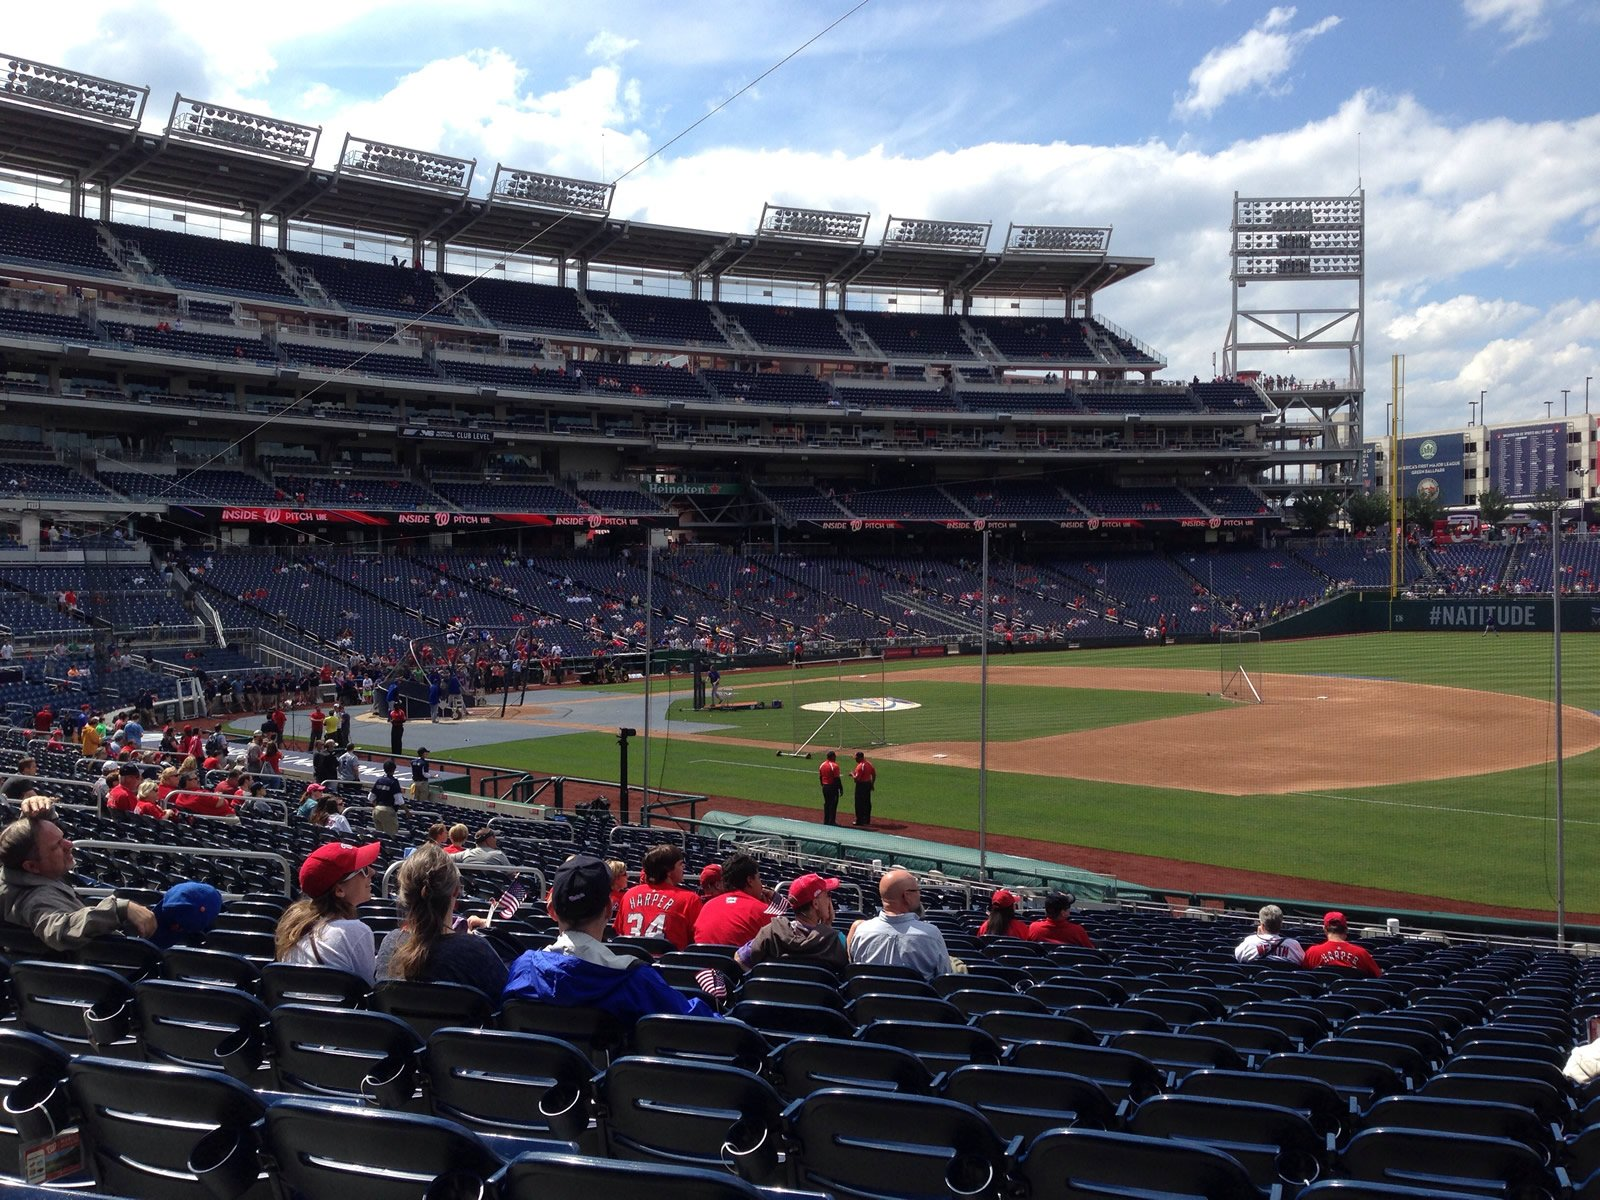 Nationals Park Great Views of the Field